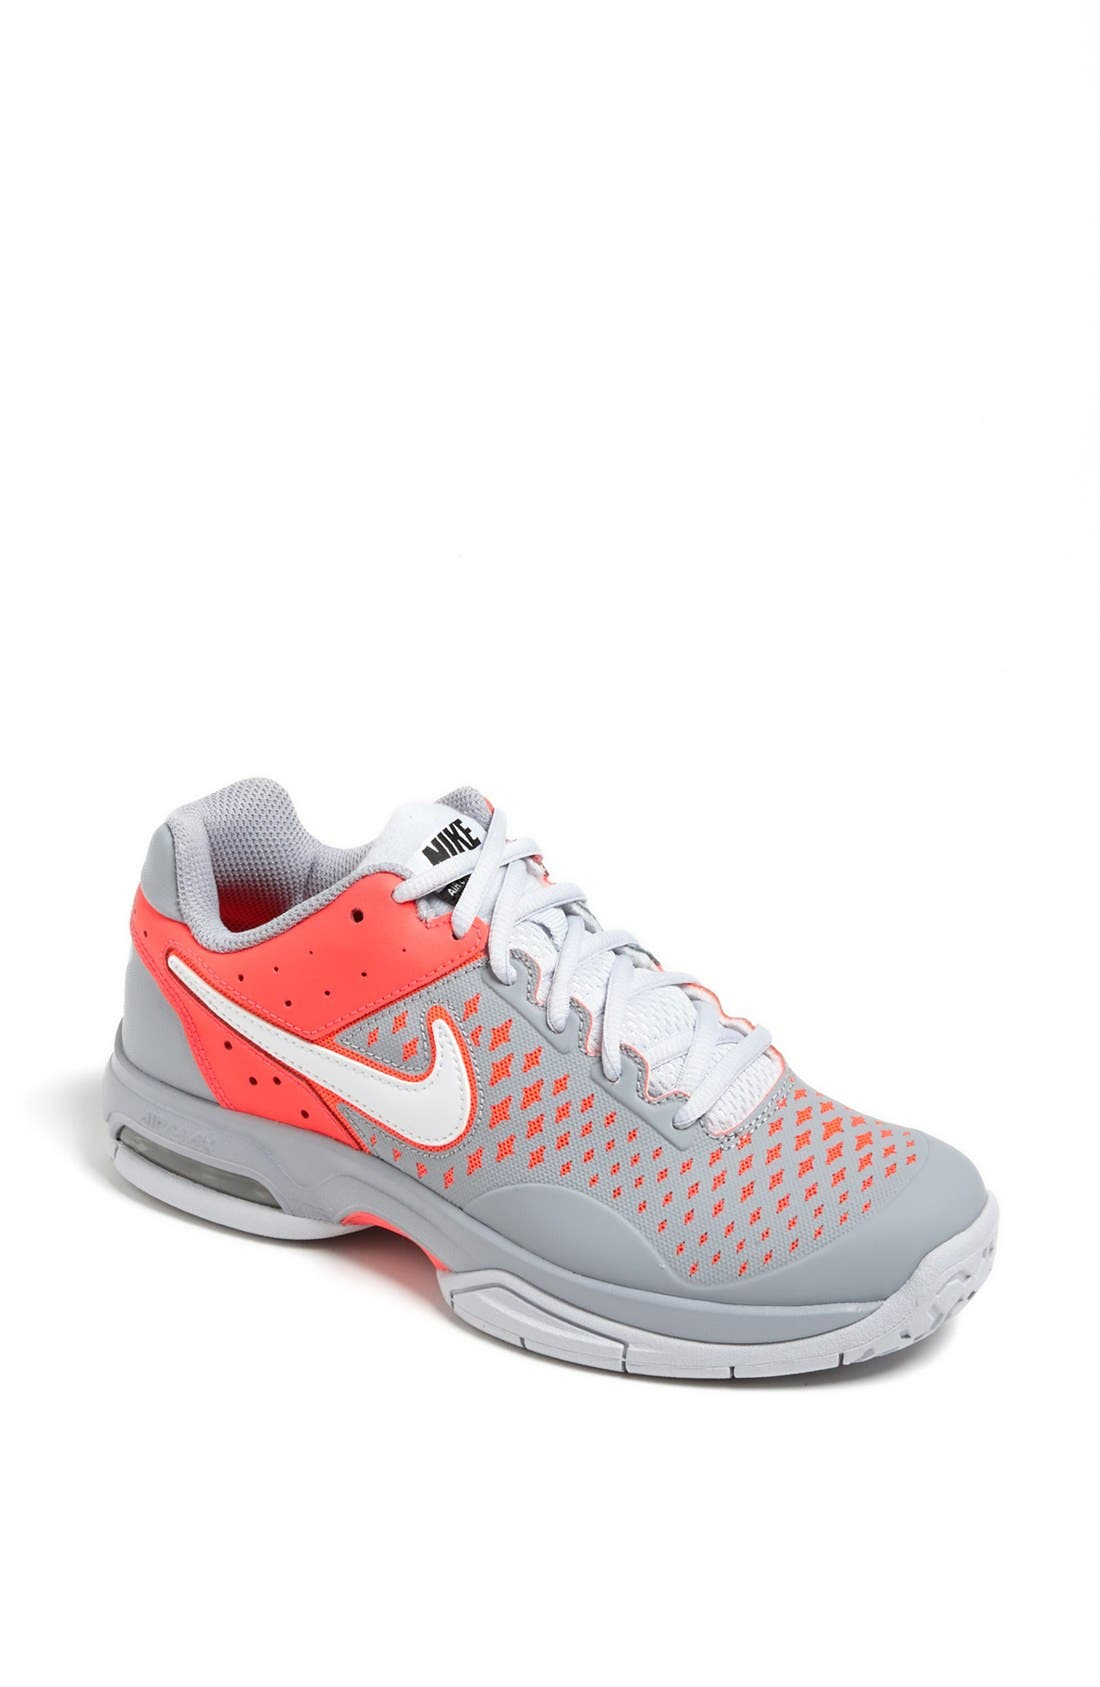 Main Image - Nike 'Air Cage Advantage' Tennis Shoe (Women)